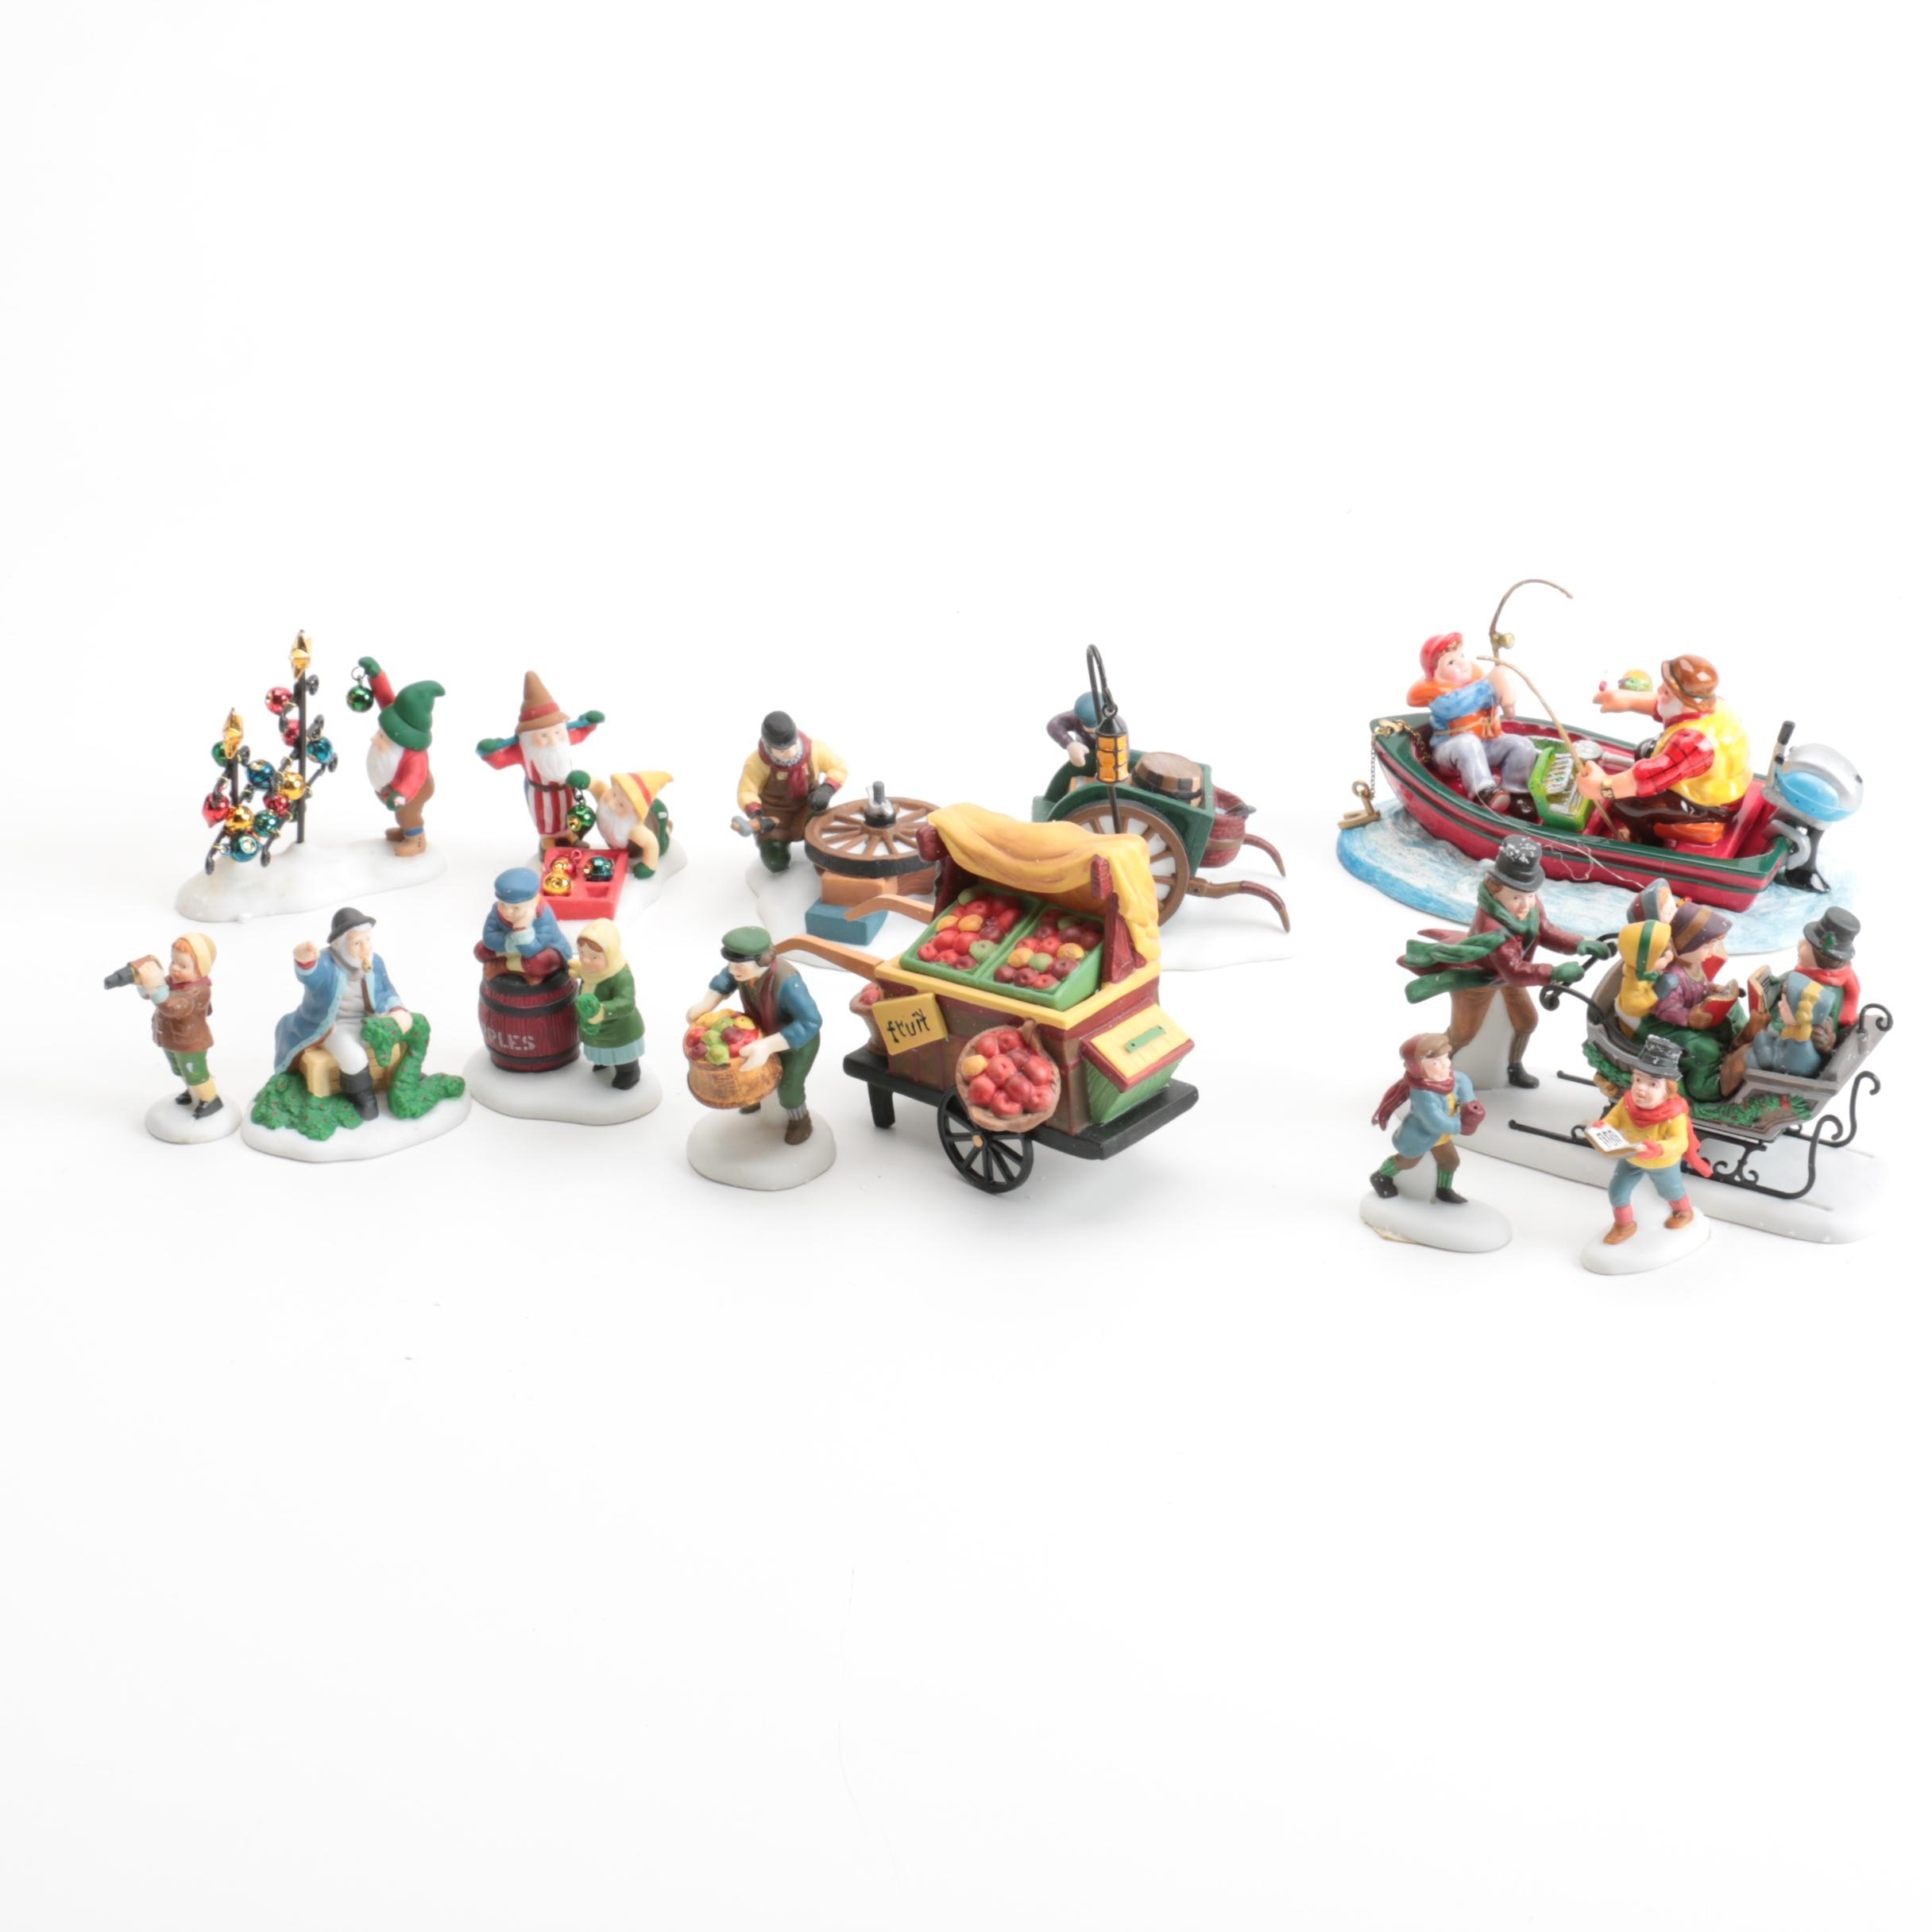 Dept. 56 Christmas Figurines